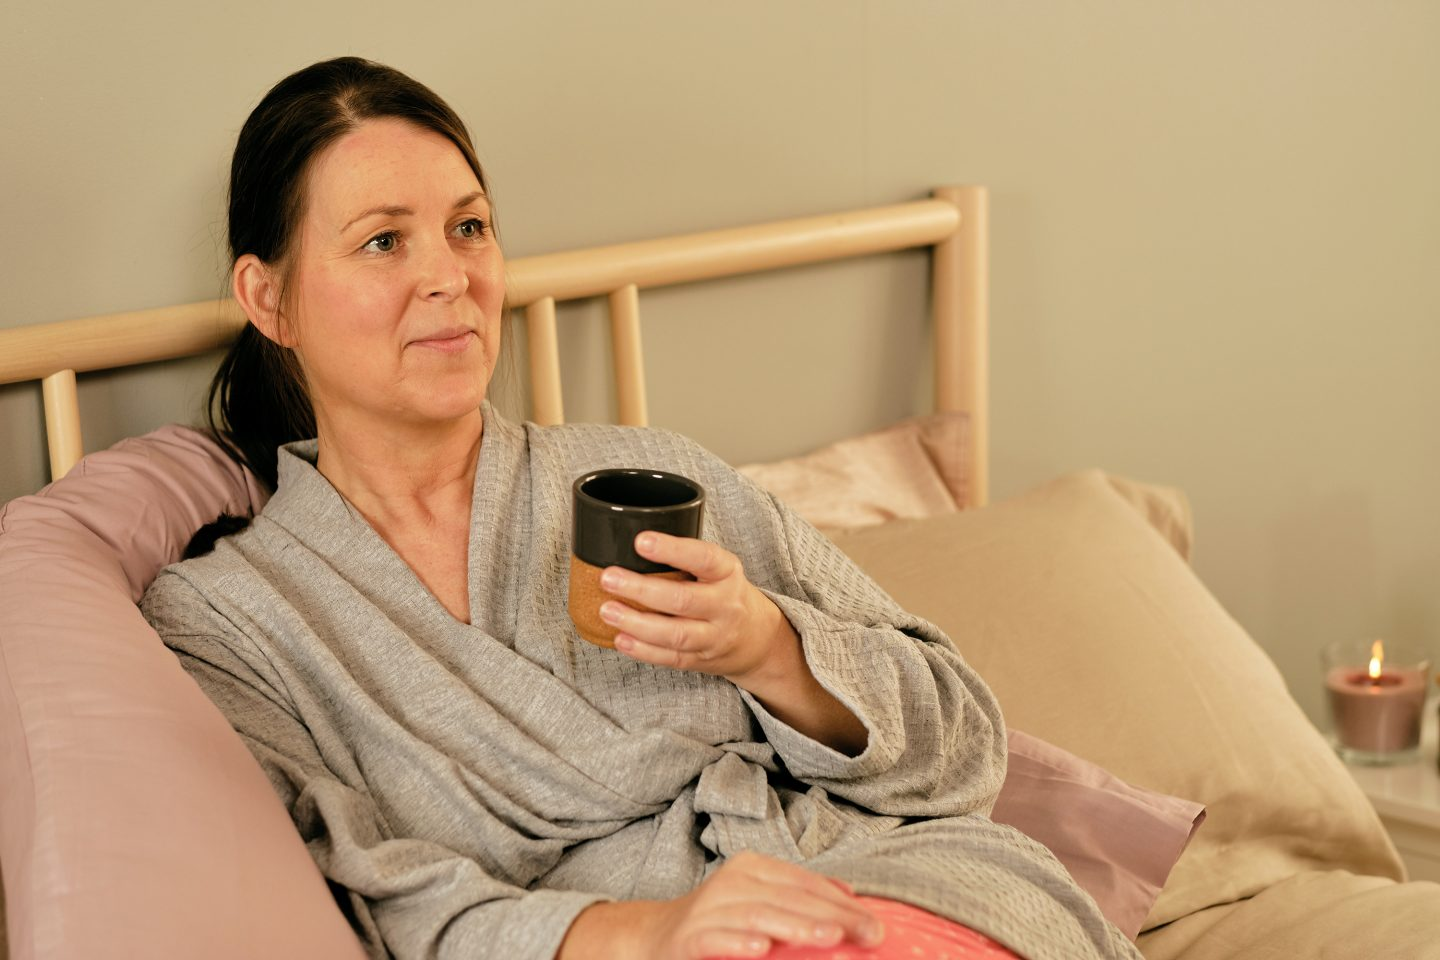 Woman sat in bed with a coffee